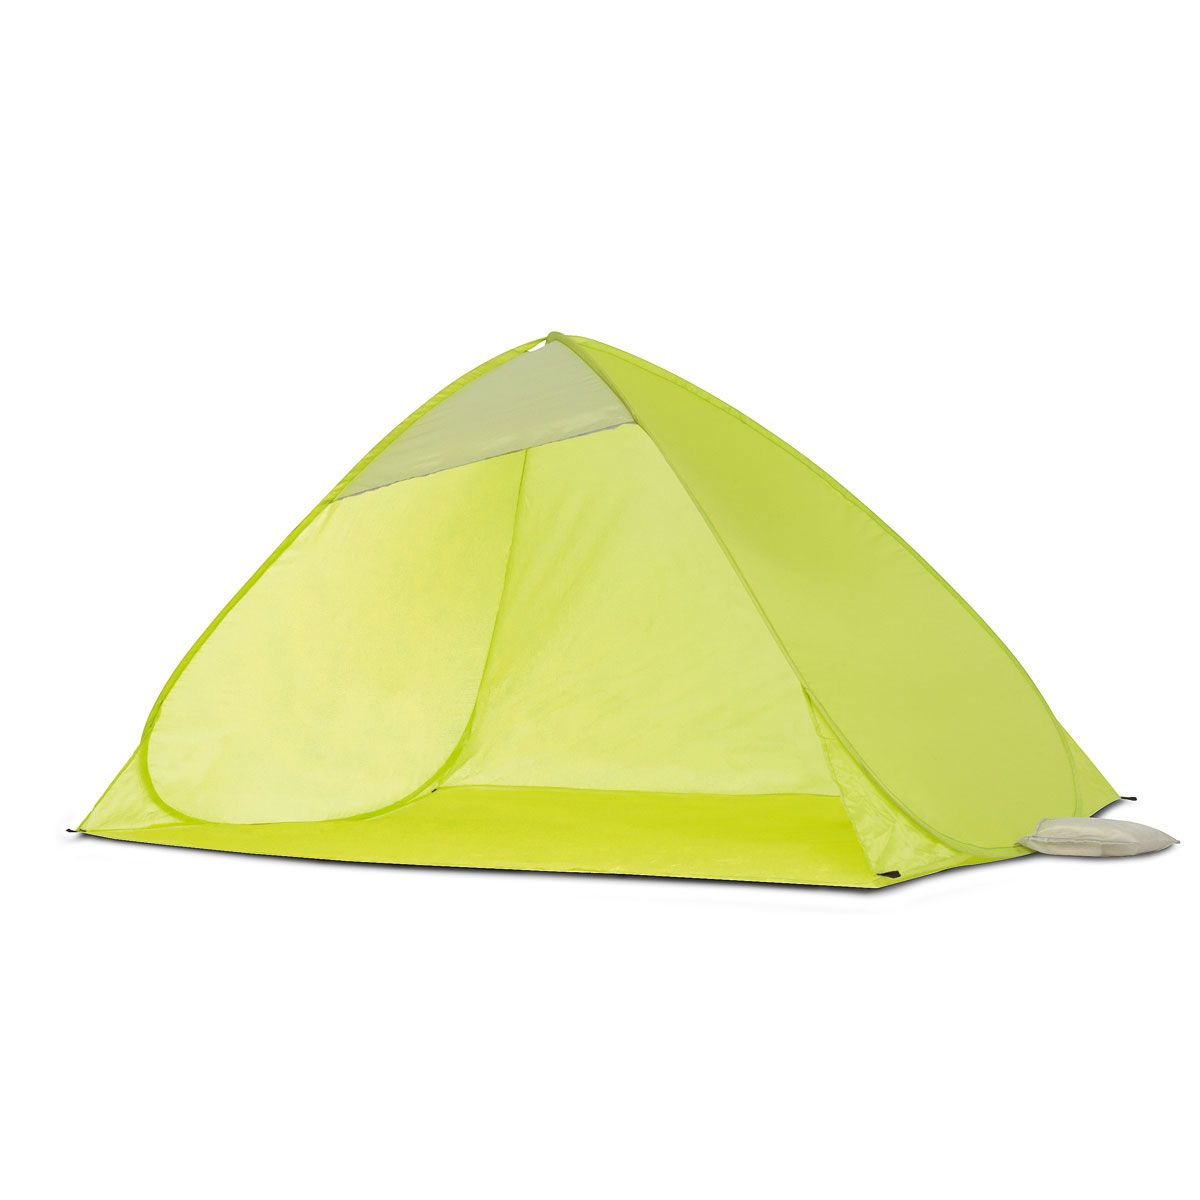 Pop Up Sun Shelter | Kmart $15 - calm down space (put a sheet over  sc 1 st  Pinterest & Pop Up Sun Shelter | Kmart $15 - calm down space (put a sheet over ...